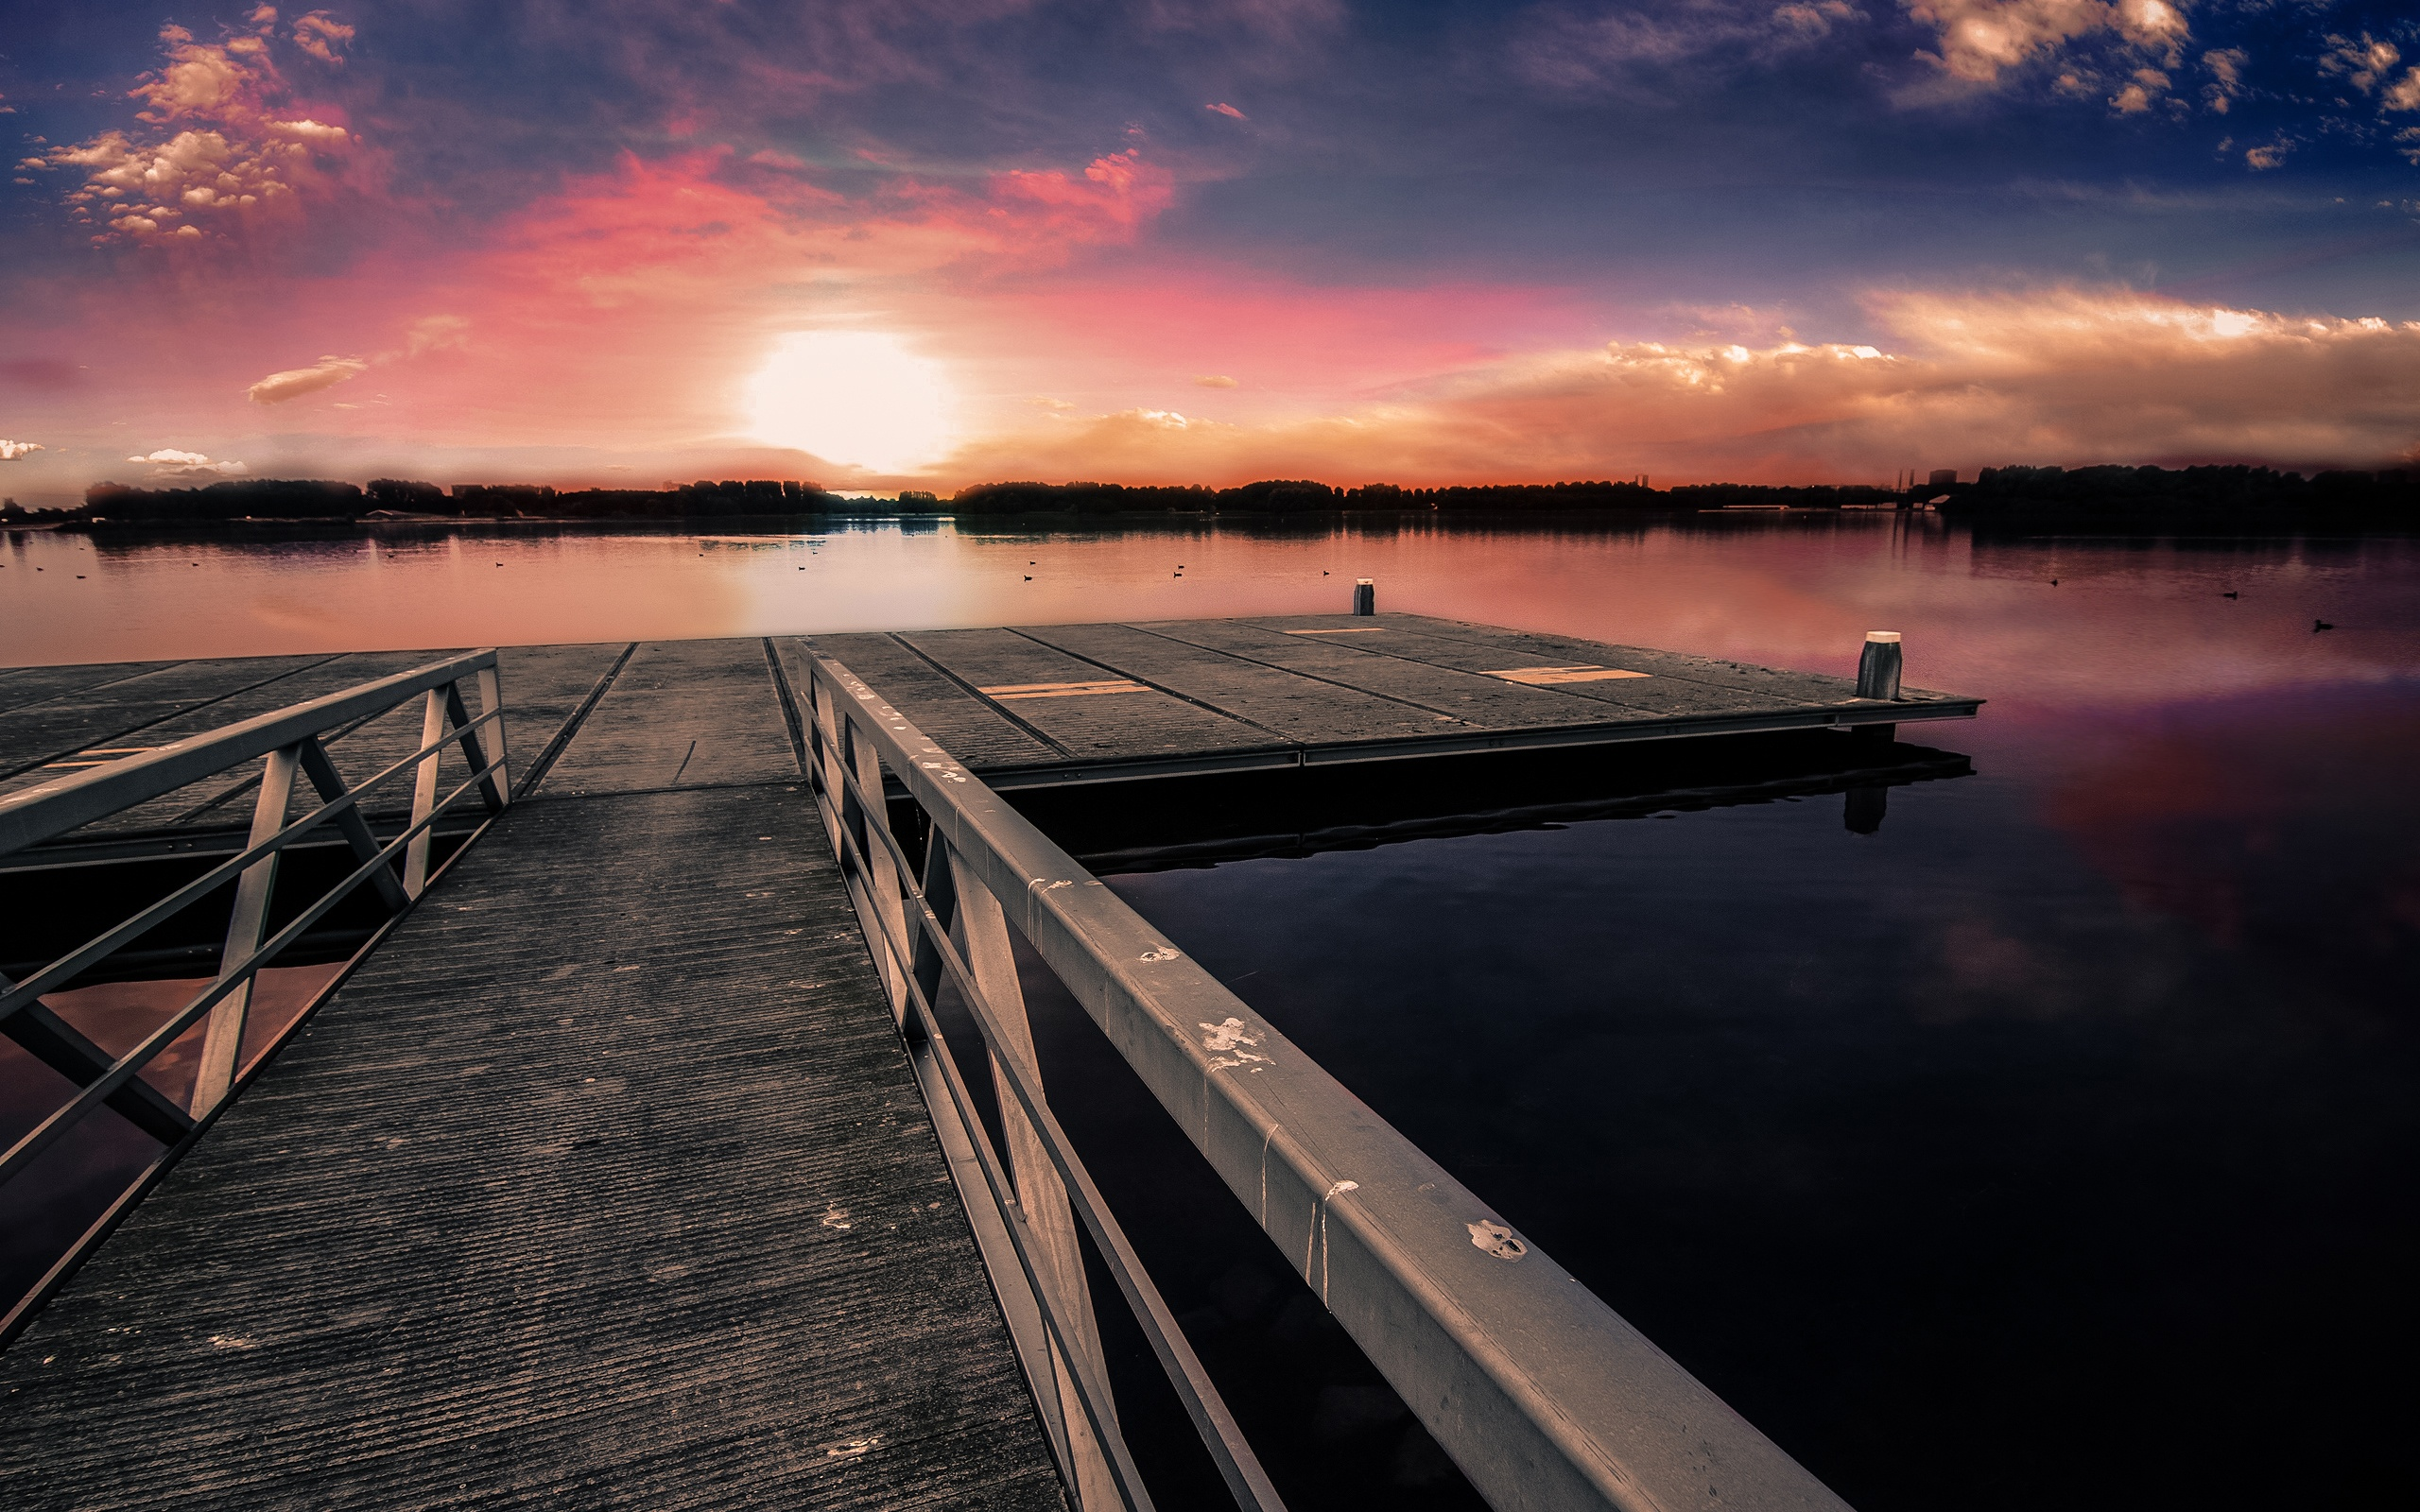 Dock Sunset Wallpapers in jpg format for free download